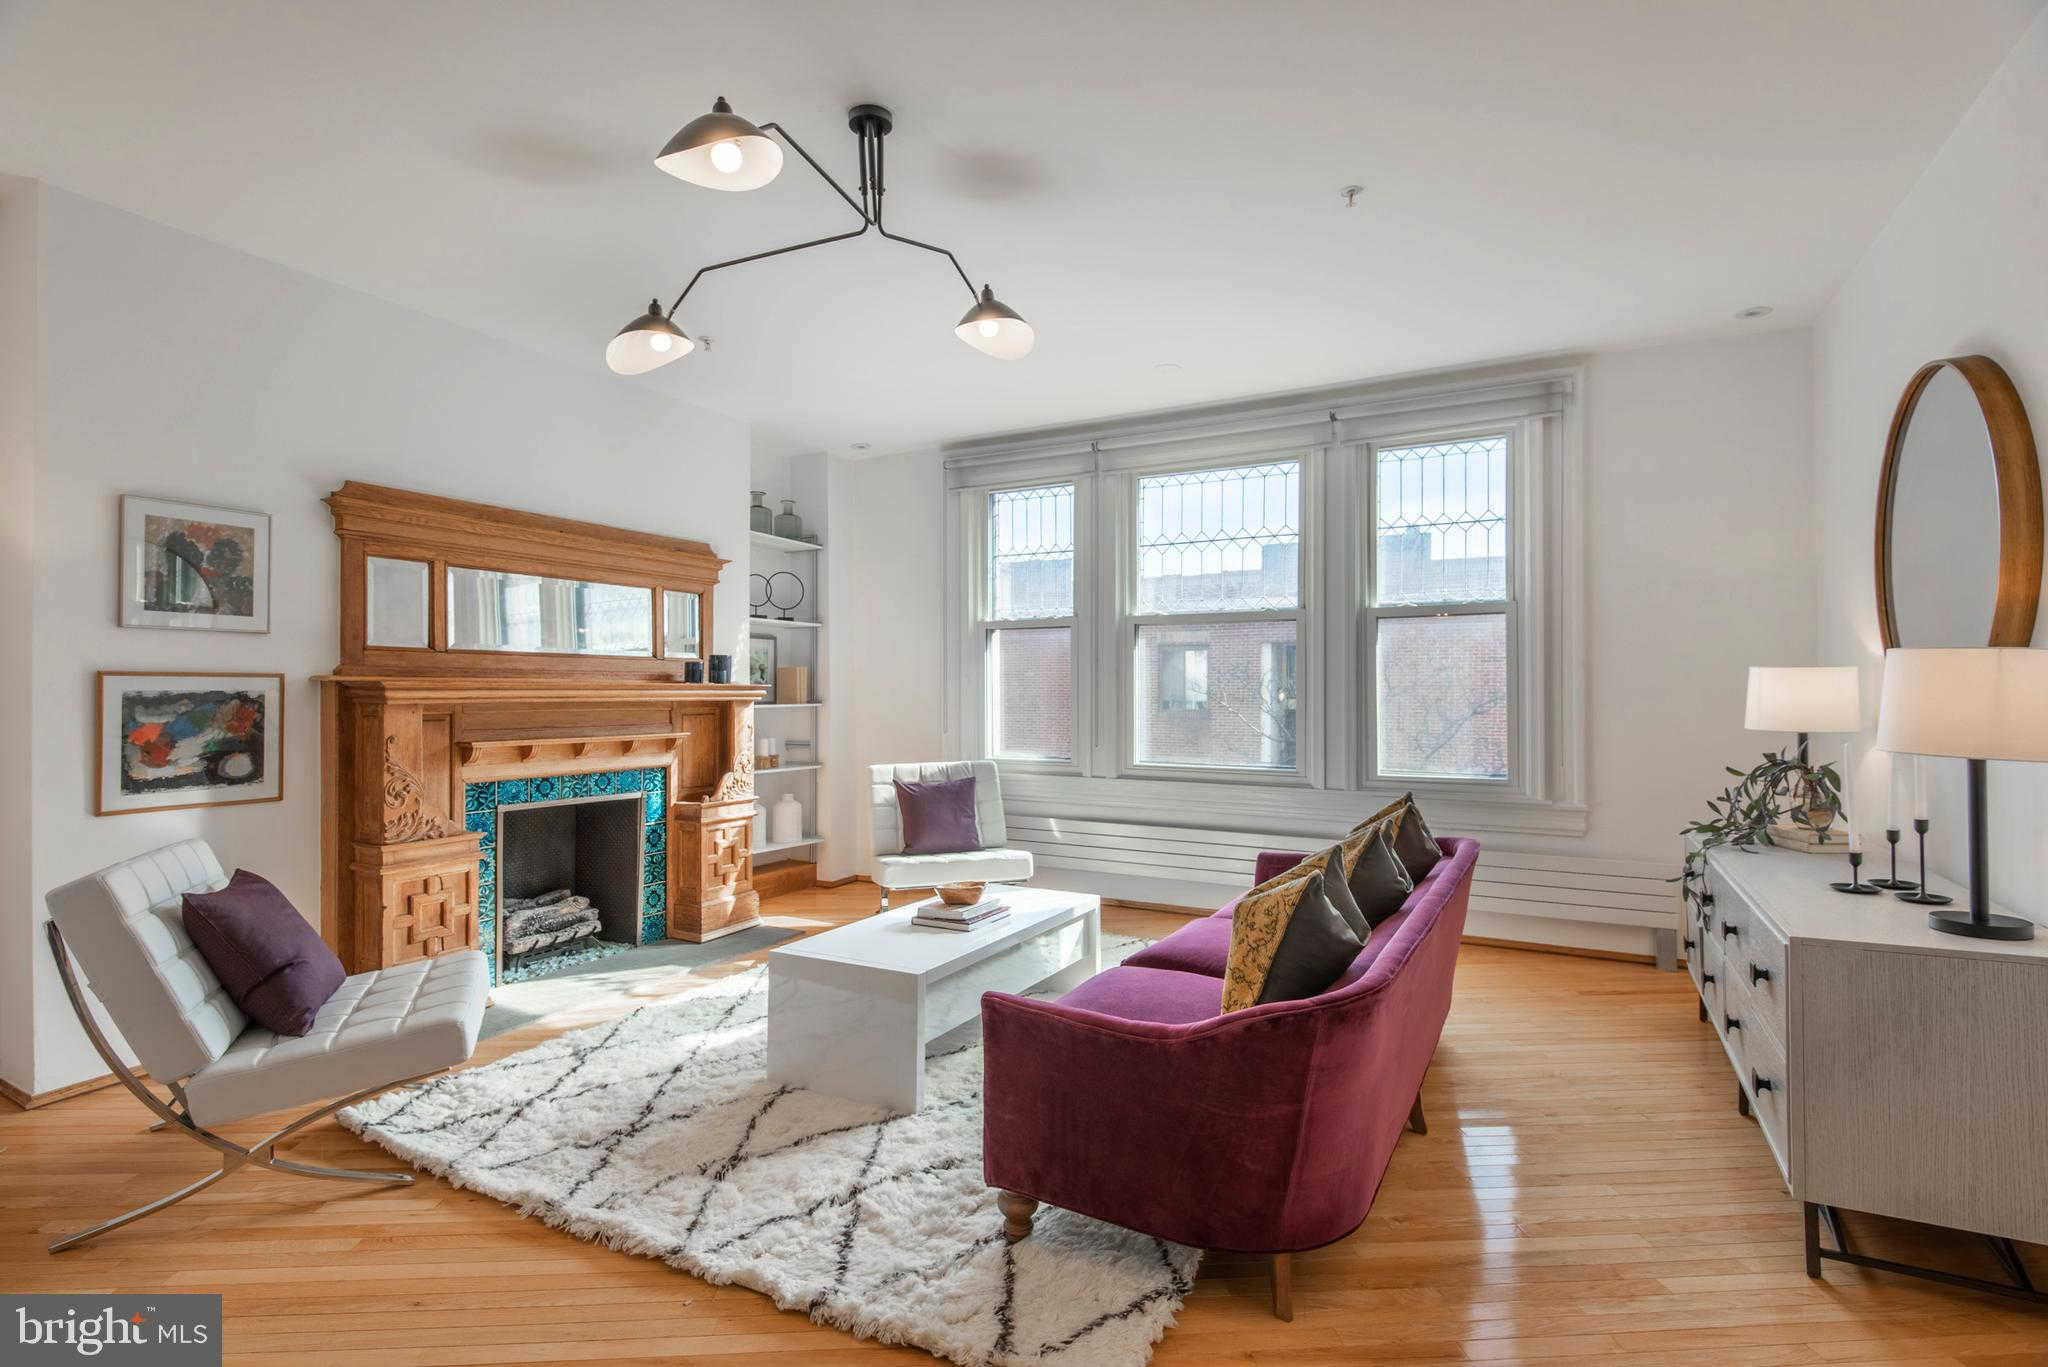 Another Property Sold - 1215 Locust Street #loft C, Philadelphia, PA 19107